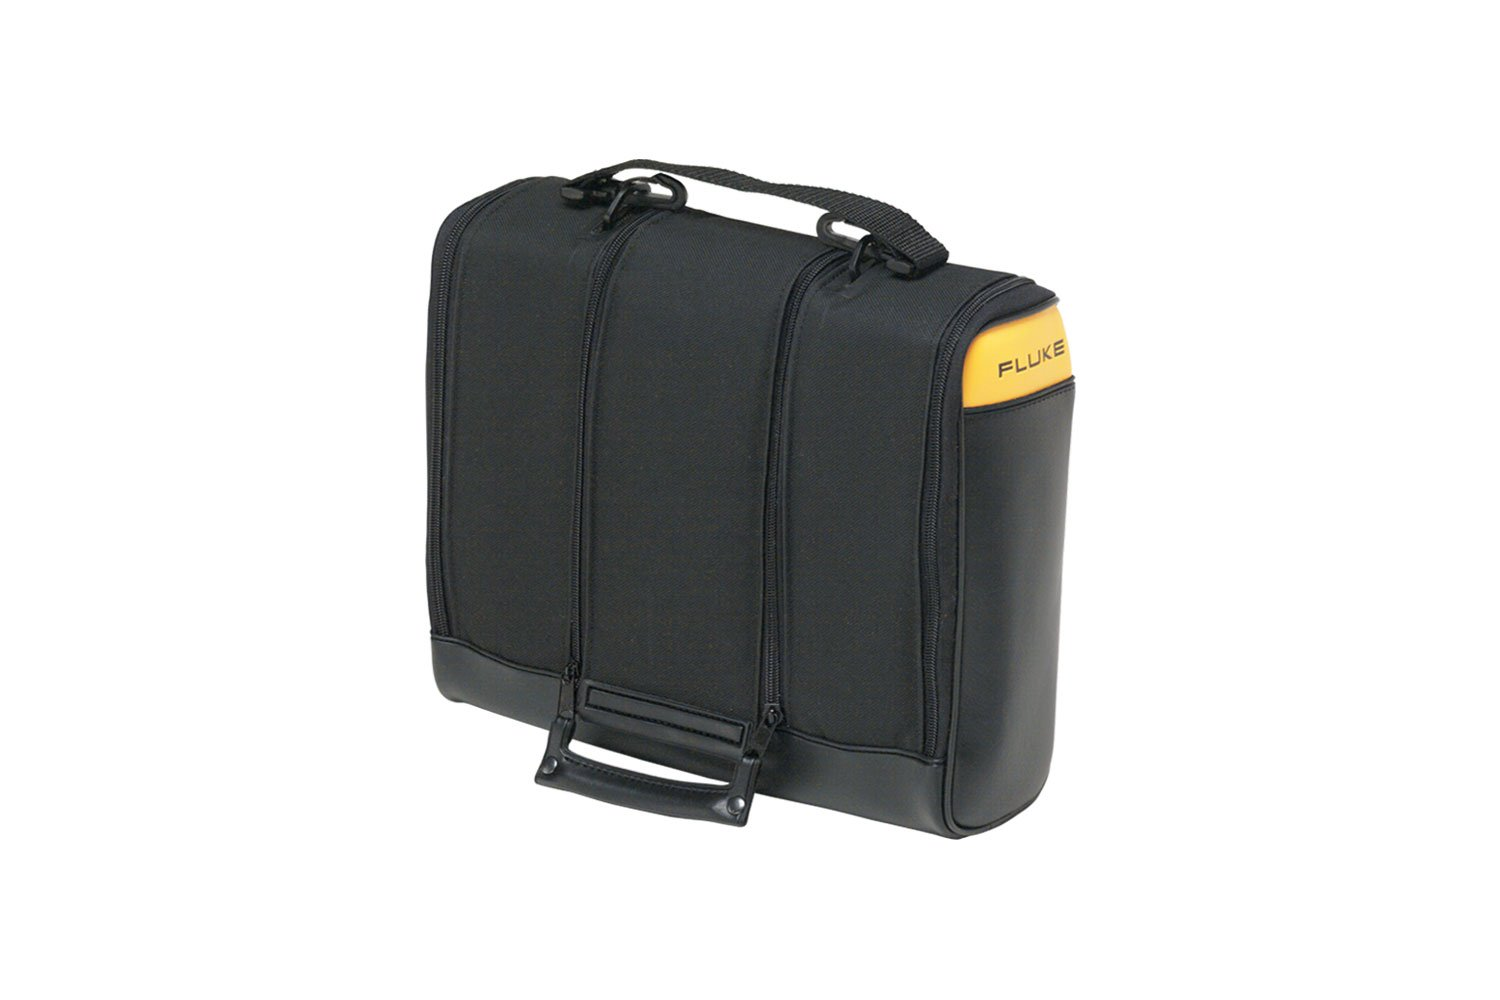 Fluke C789 Soft Carrying Case